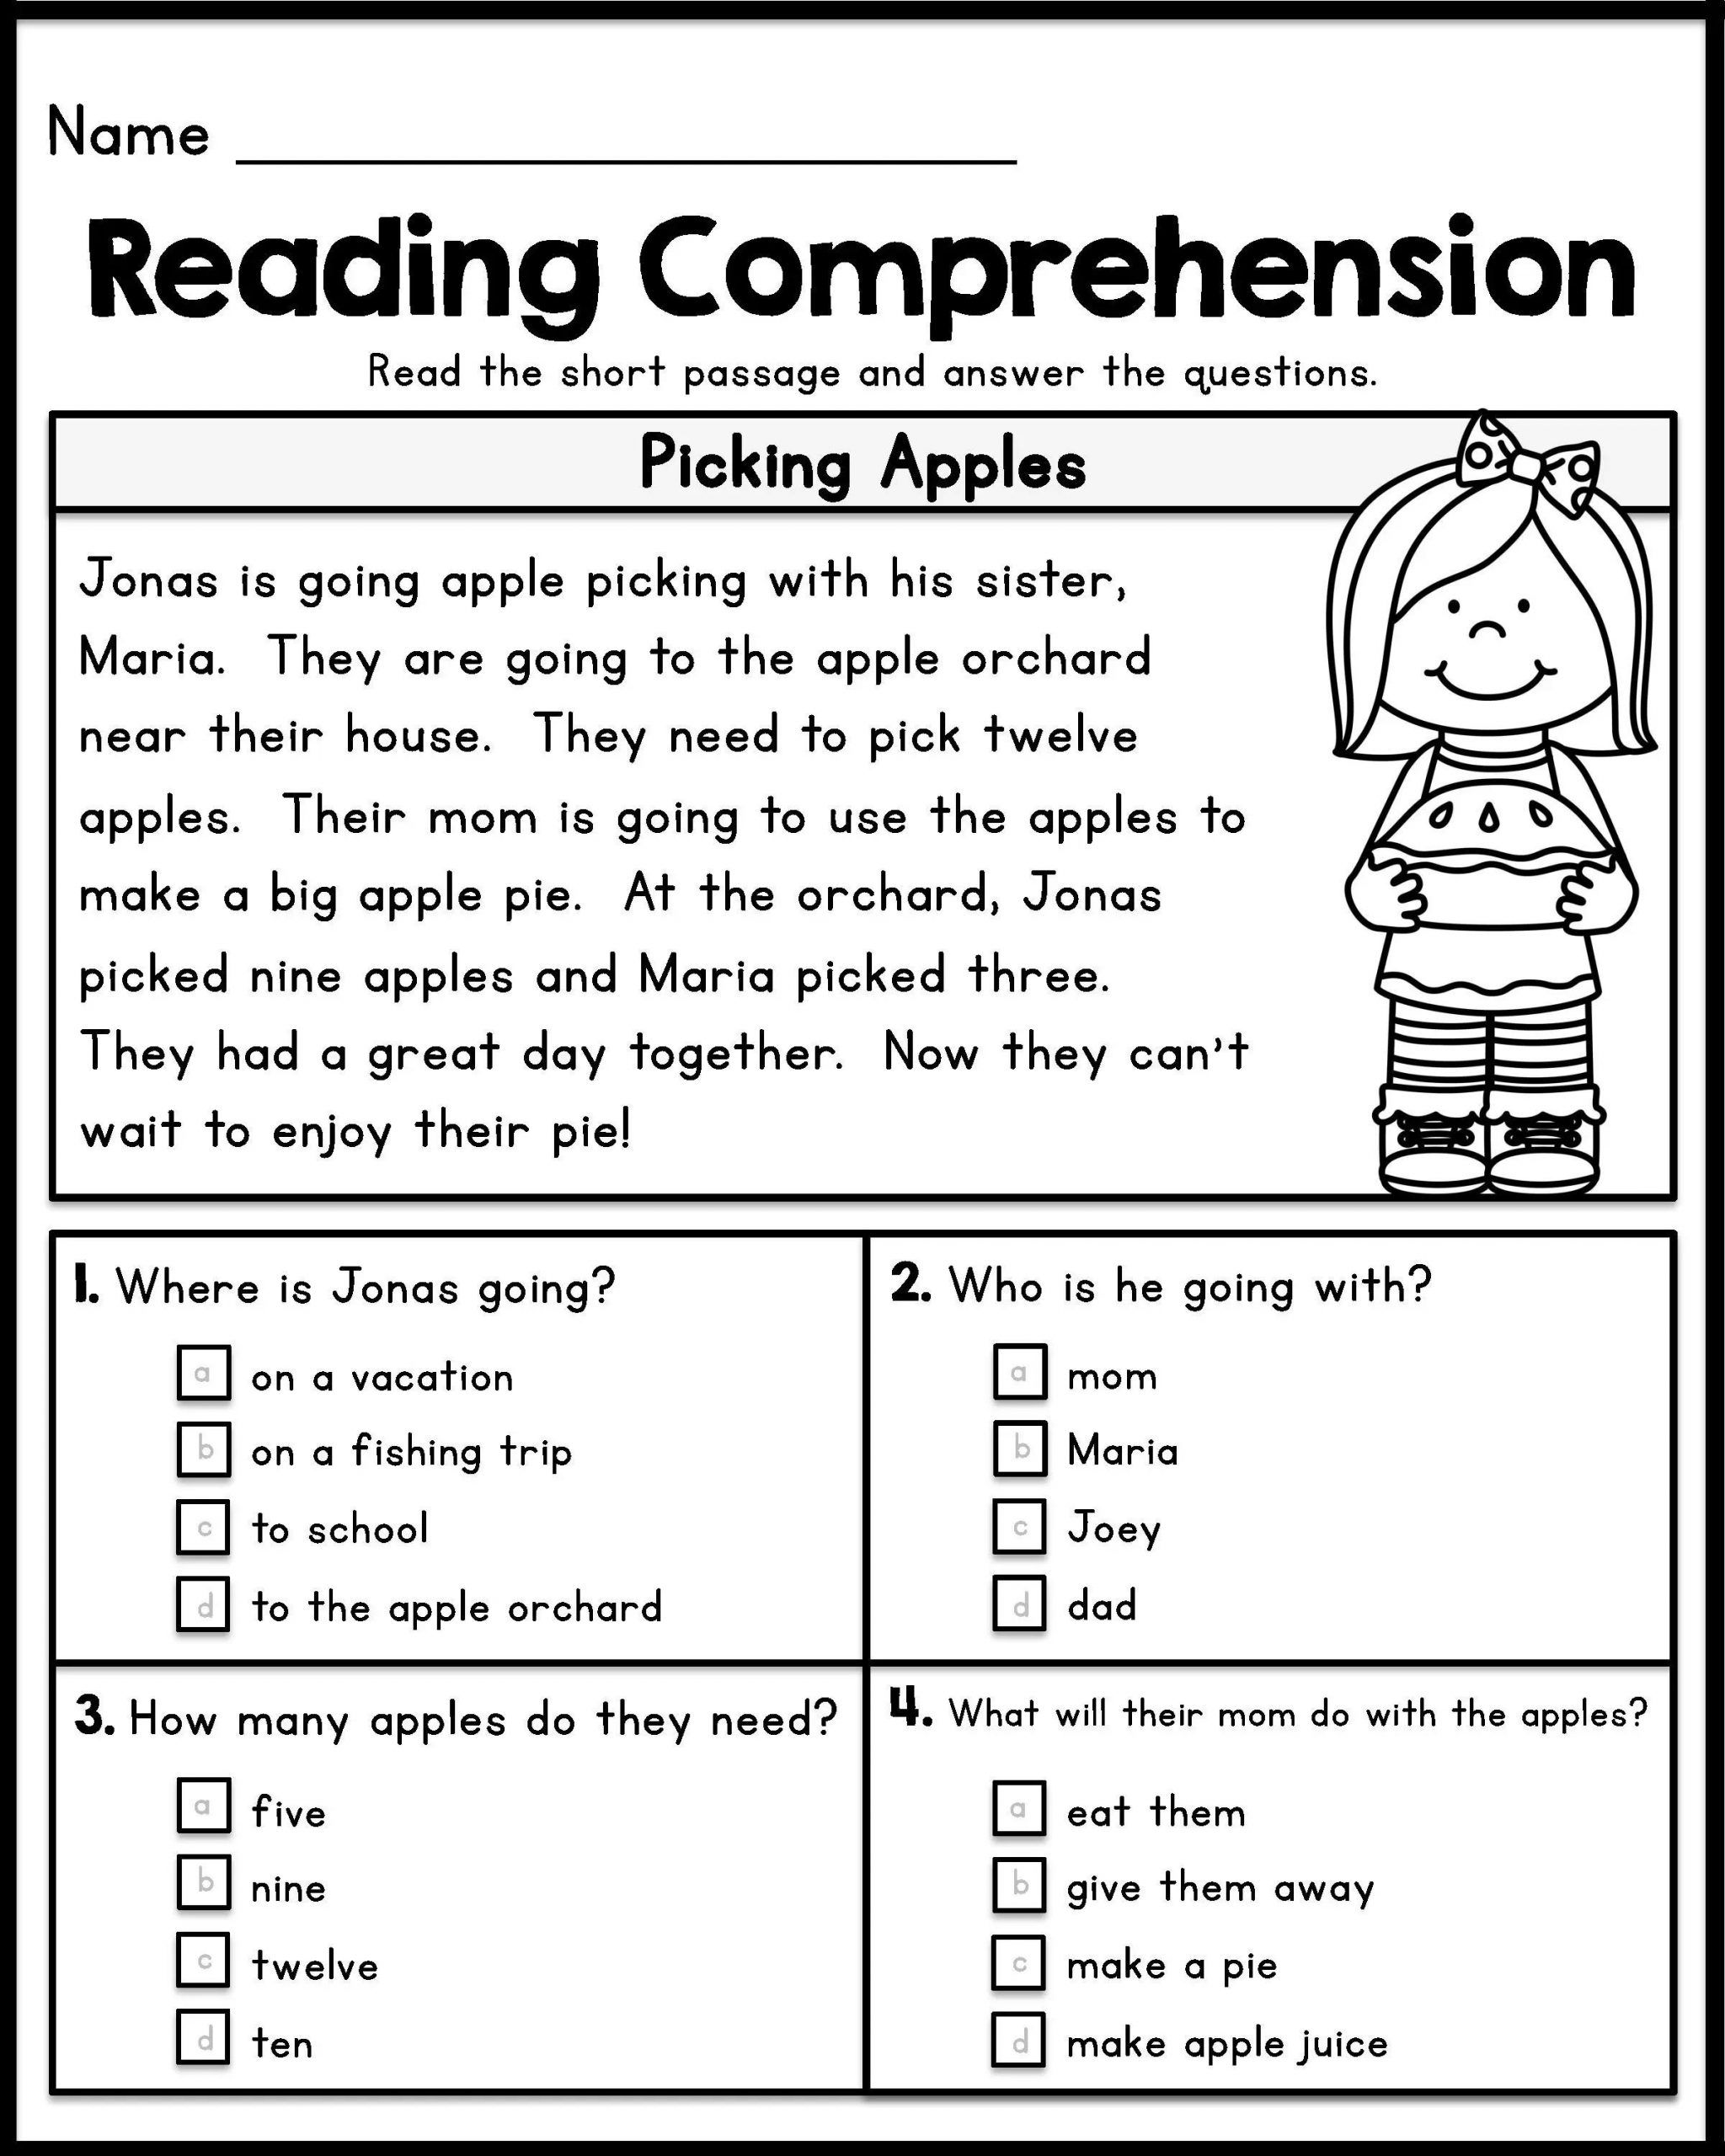 First Grade Reading Worksheets In 2020 First Grade Worksheets Reading Worksheets 1st Grade Reading Worksheets